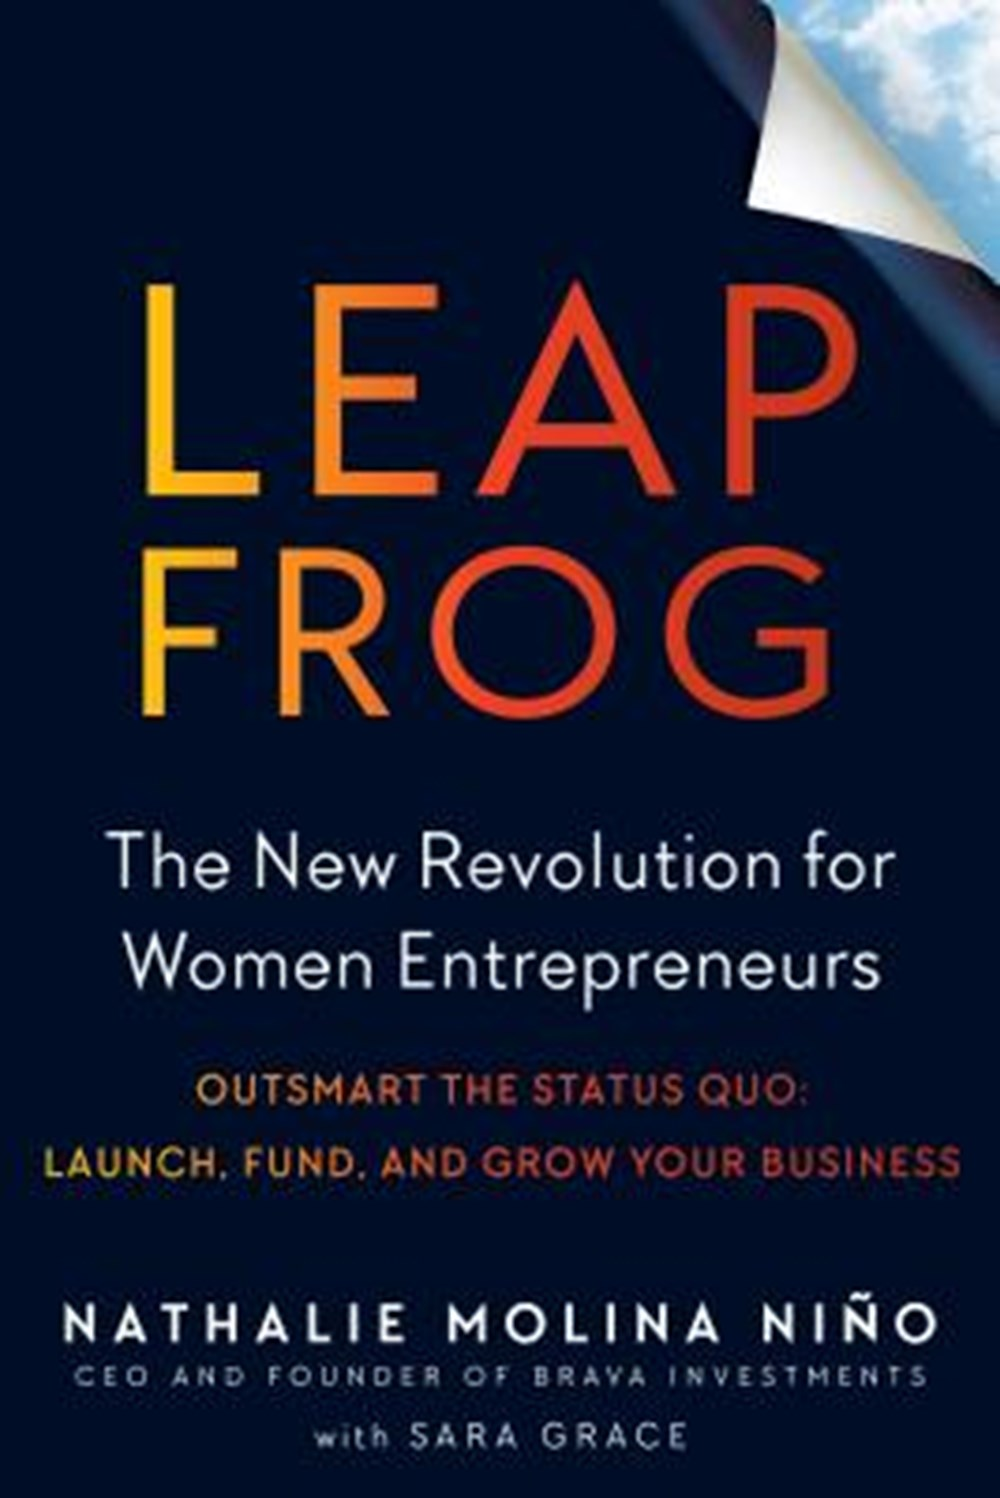 Leapfrog The New Revolution for Women Entrepreneurs